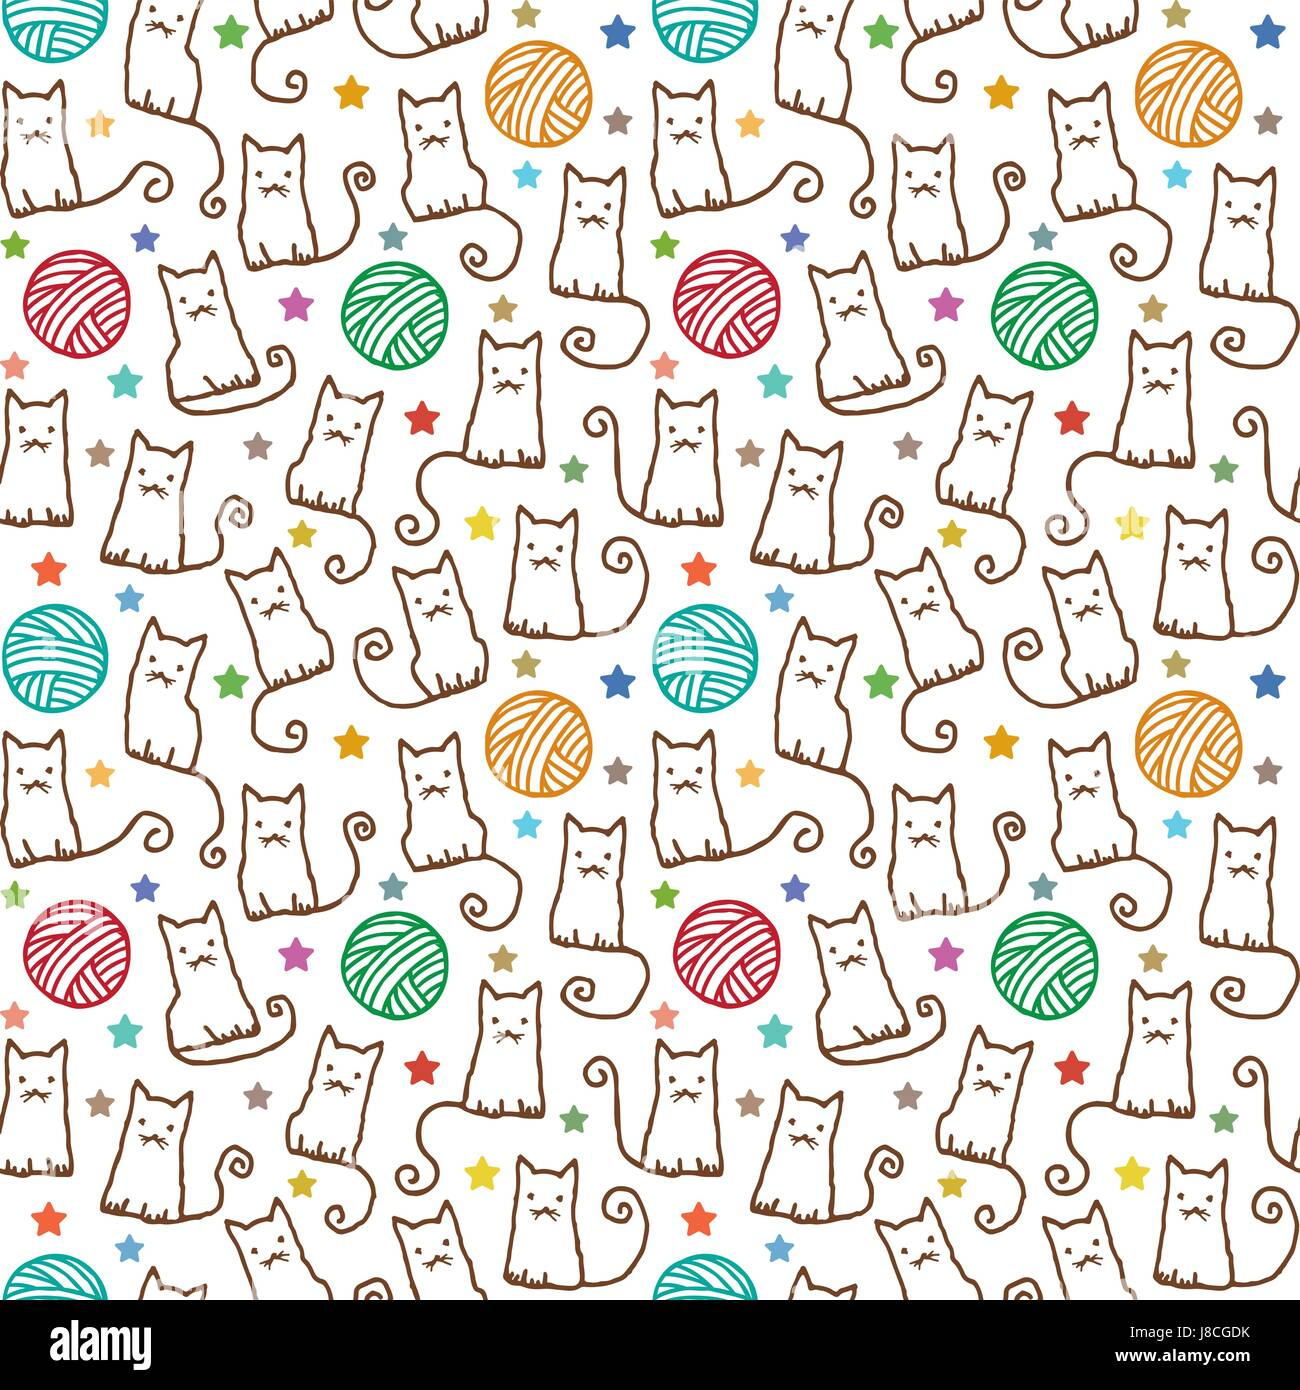 Hand drawn vector seamless pattern with cats and wool claws 1 - Stock Vector